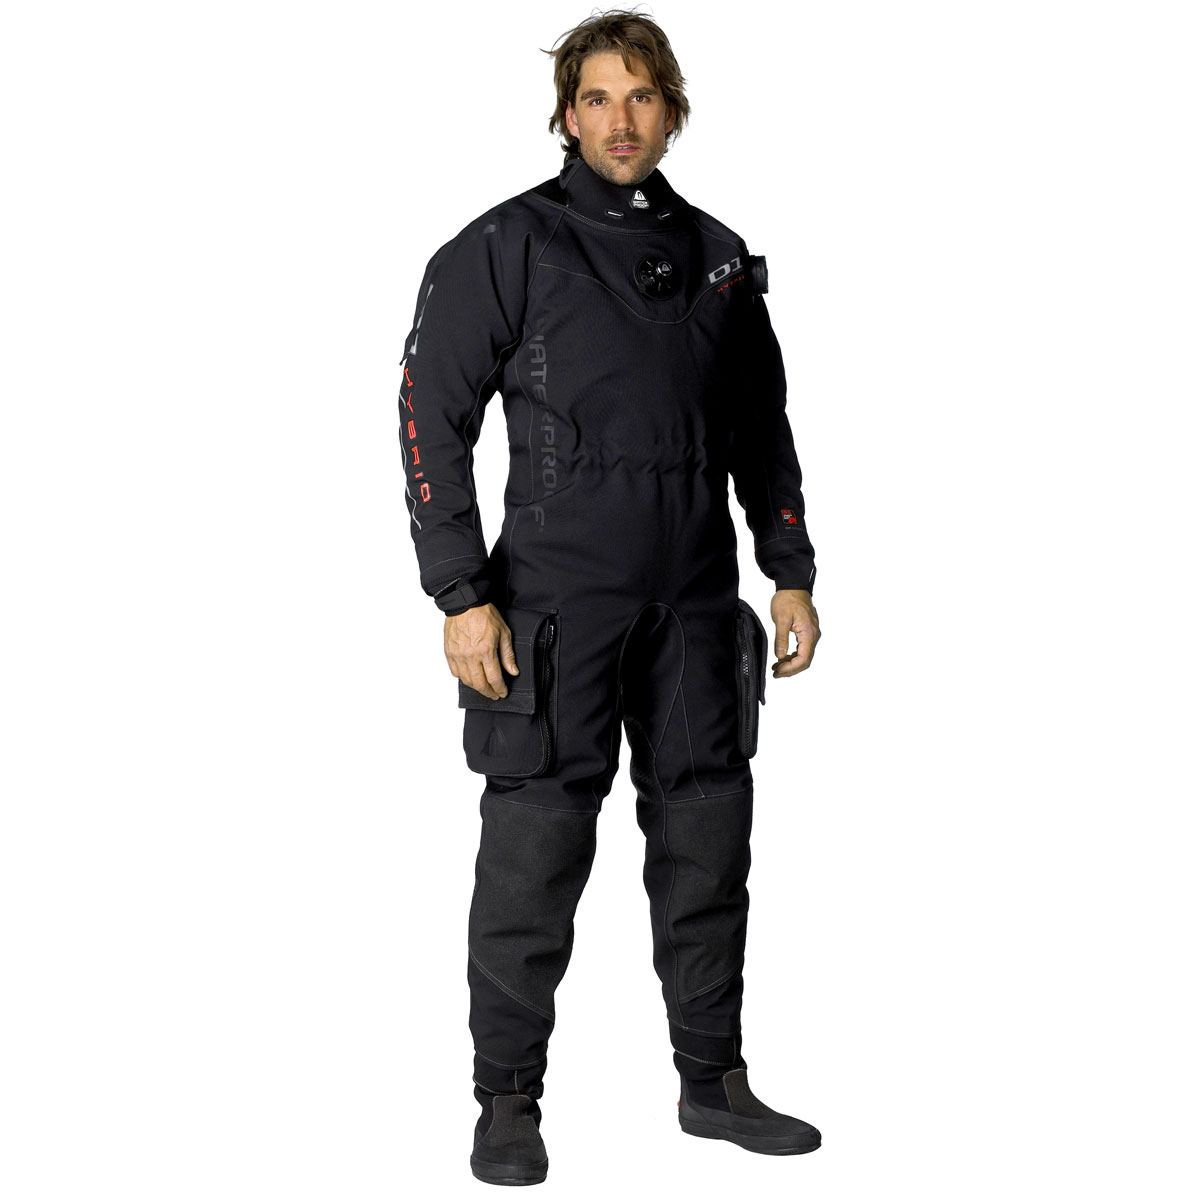 Waterproof Drysuit